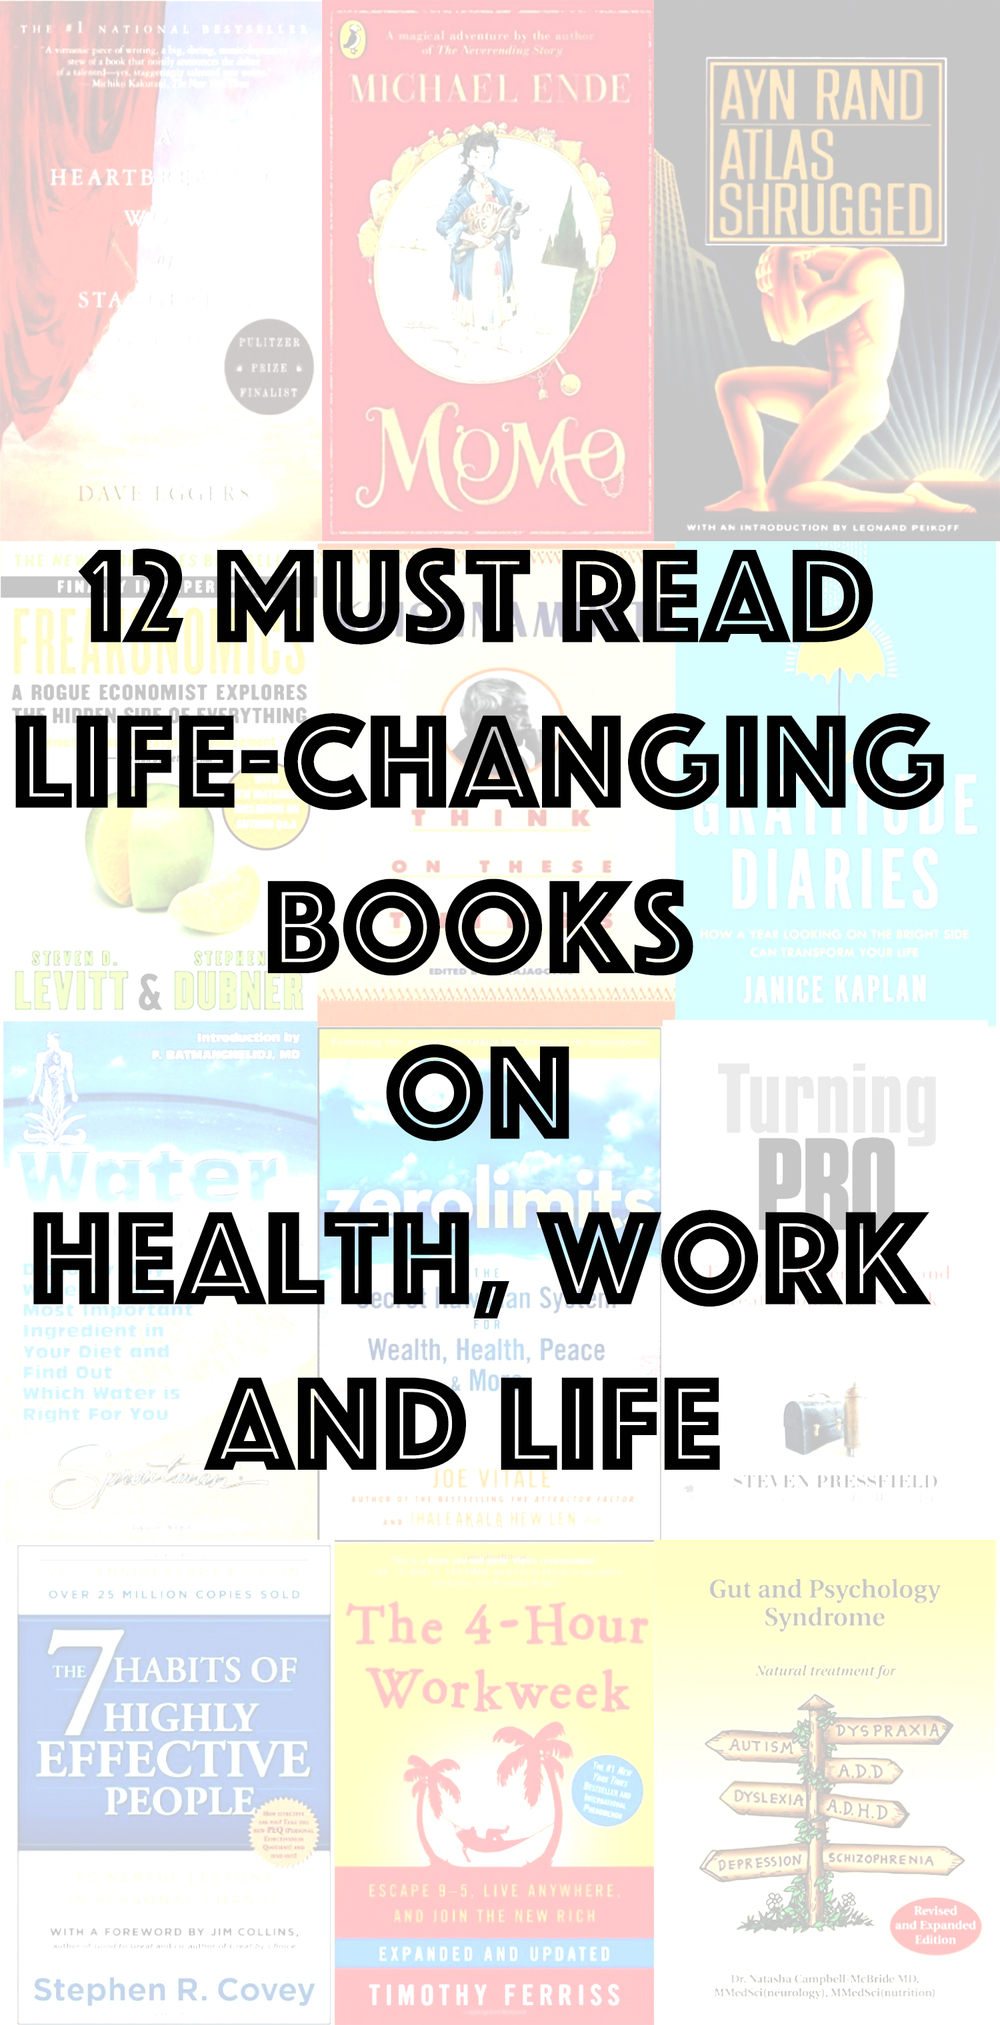 Pin now, and add to your reading list!